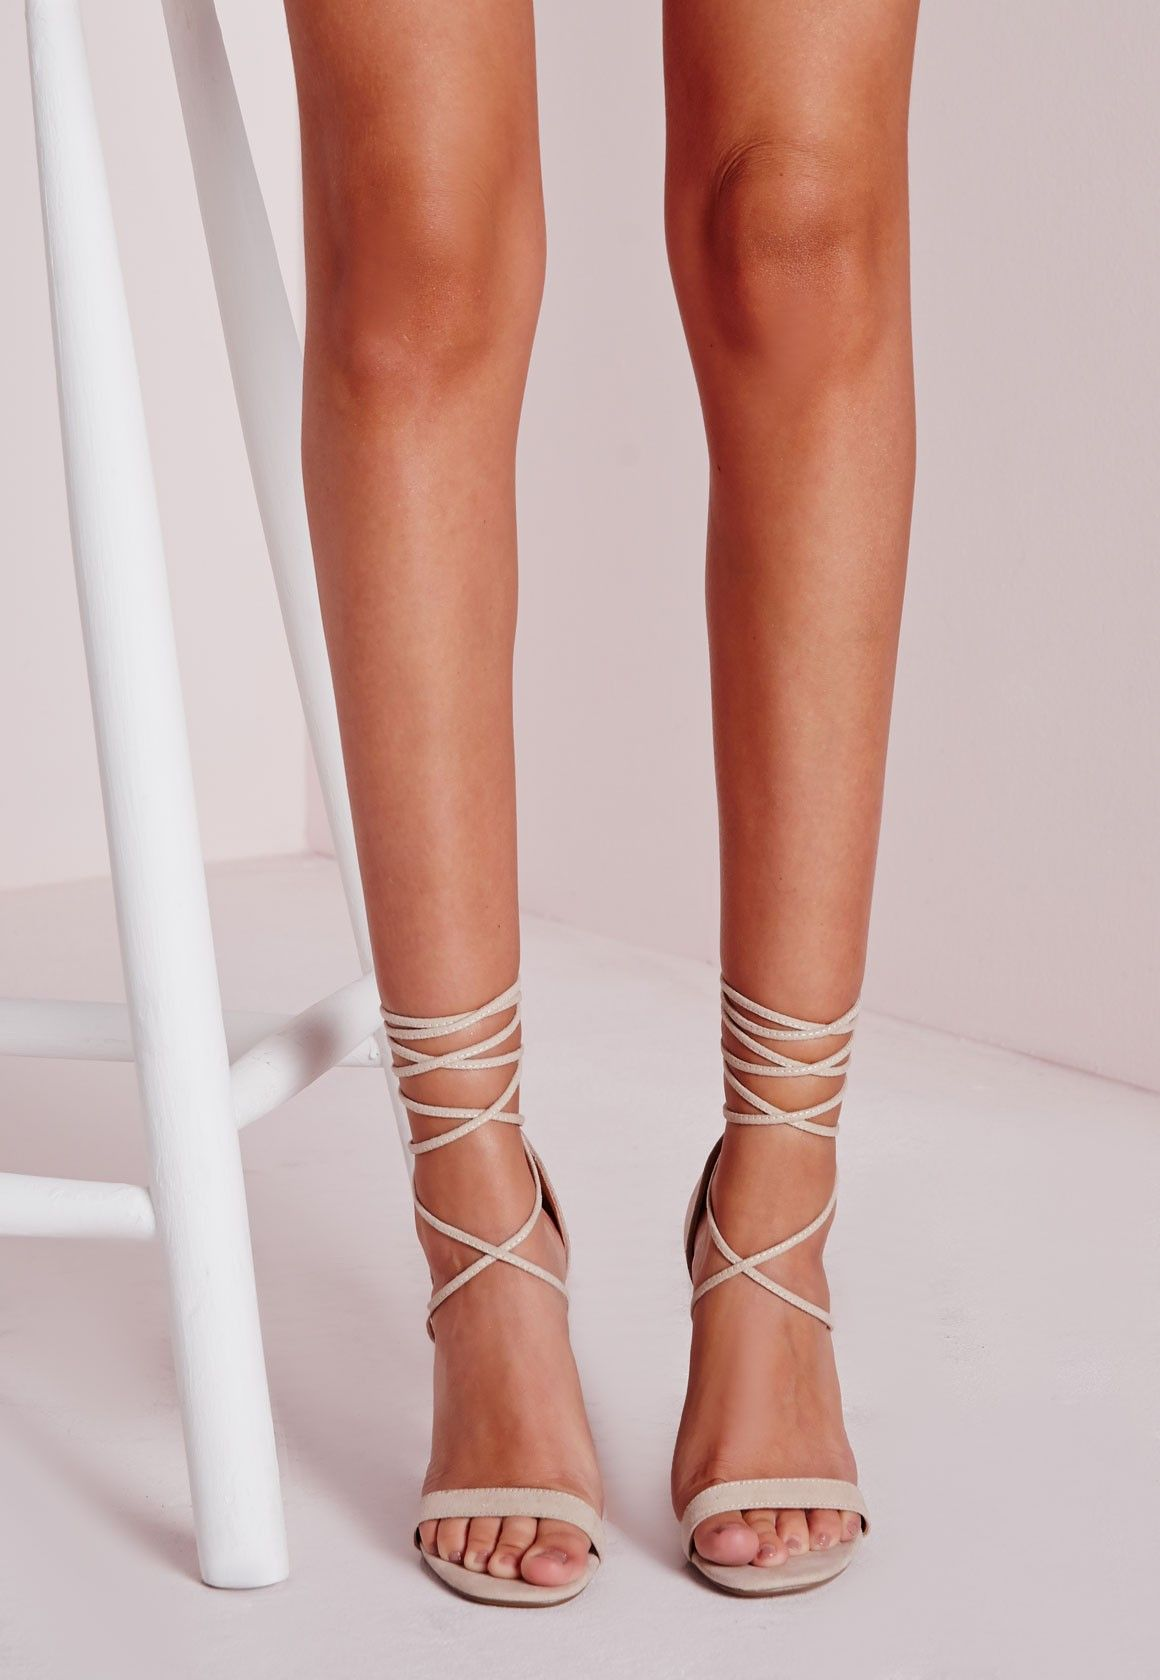 9e82b8f83a7 Step out in style this season in these fierce barely there heeled sandals  in always on trend nude. Featuring a super soft faux suede feel and lace up  finish ...